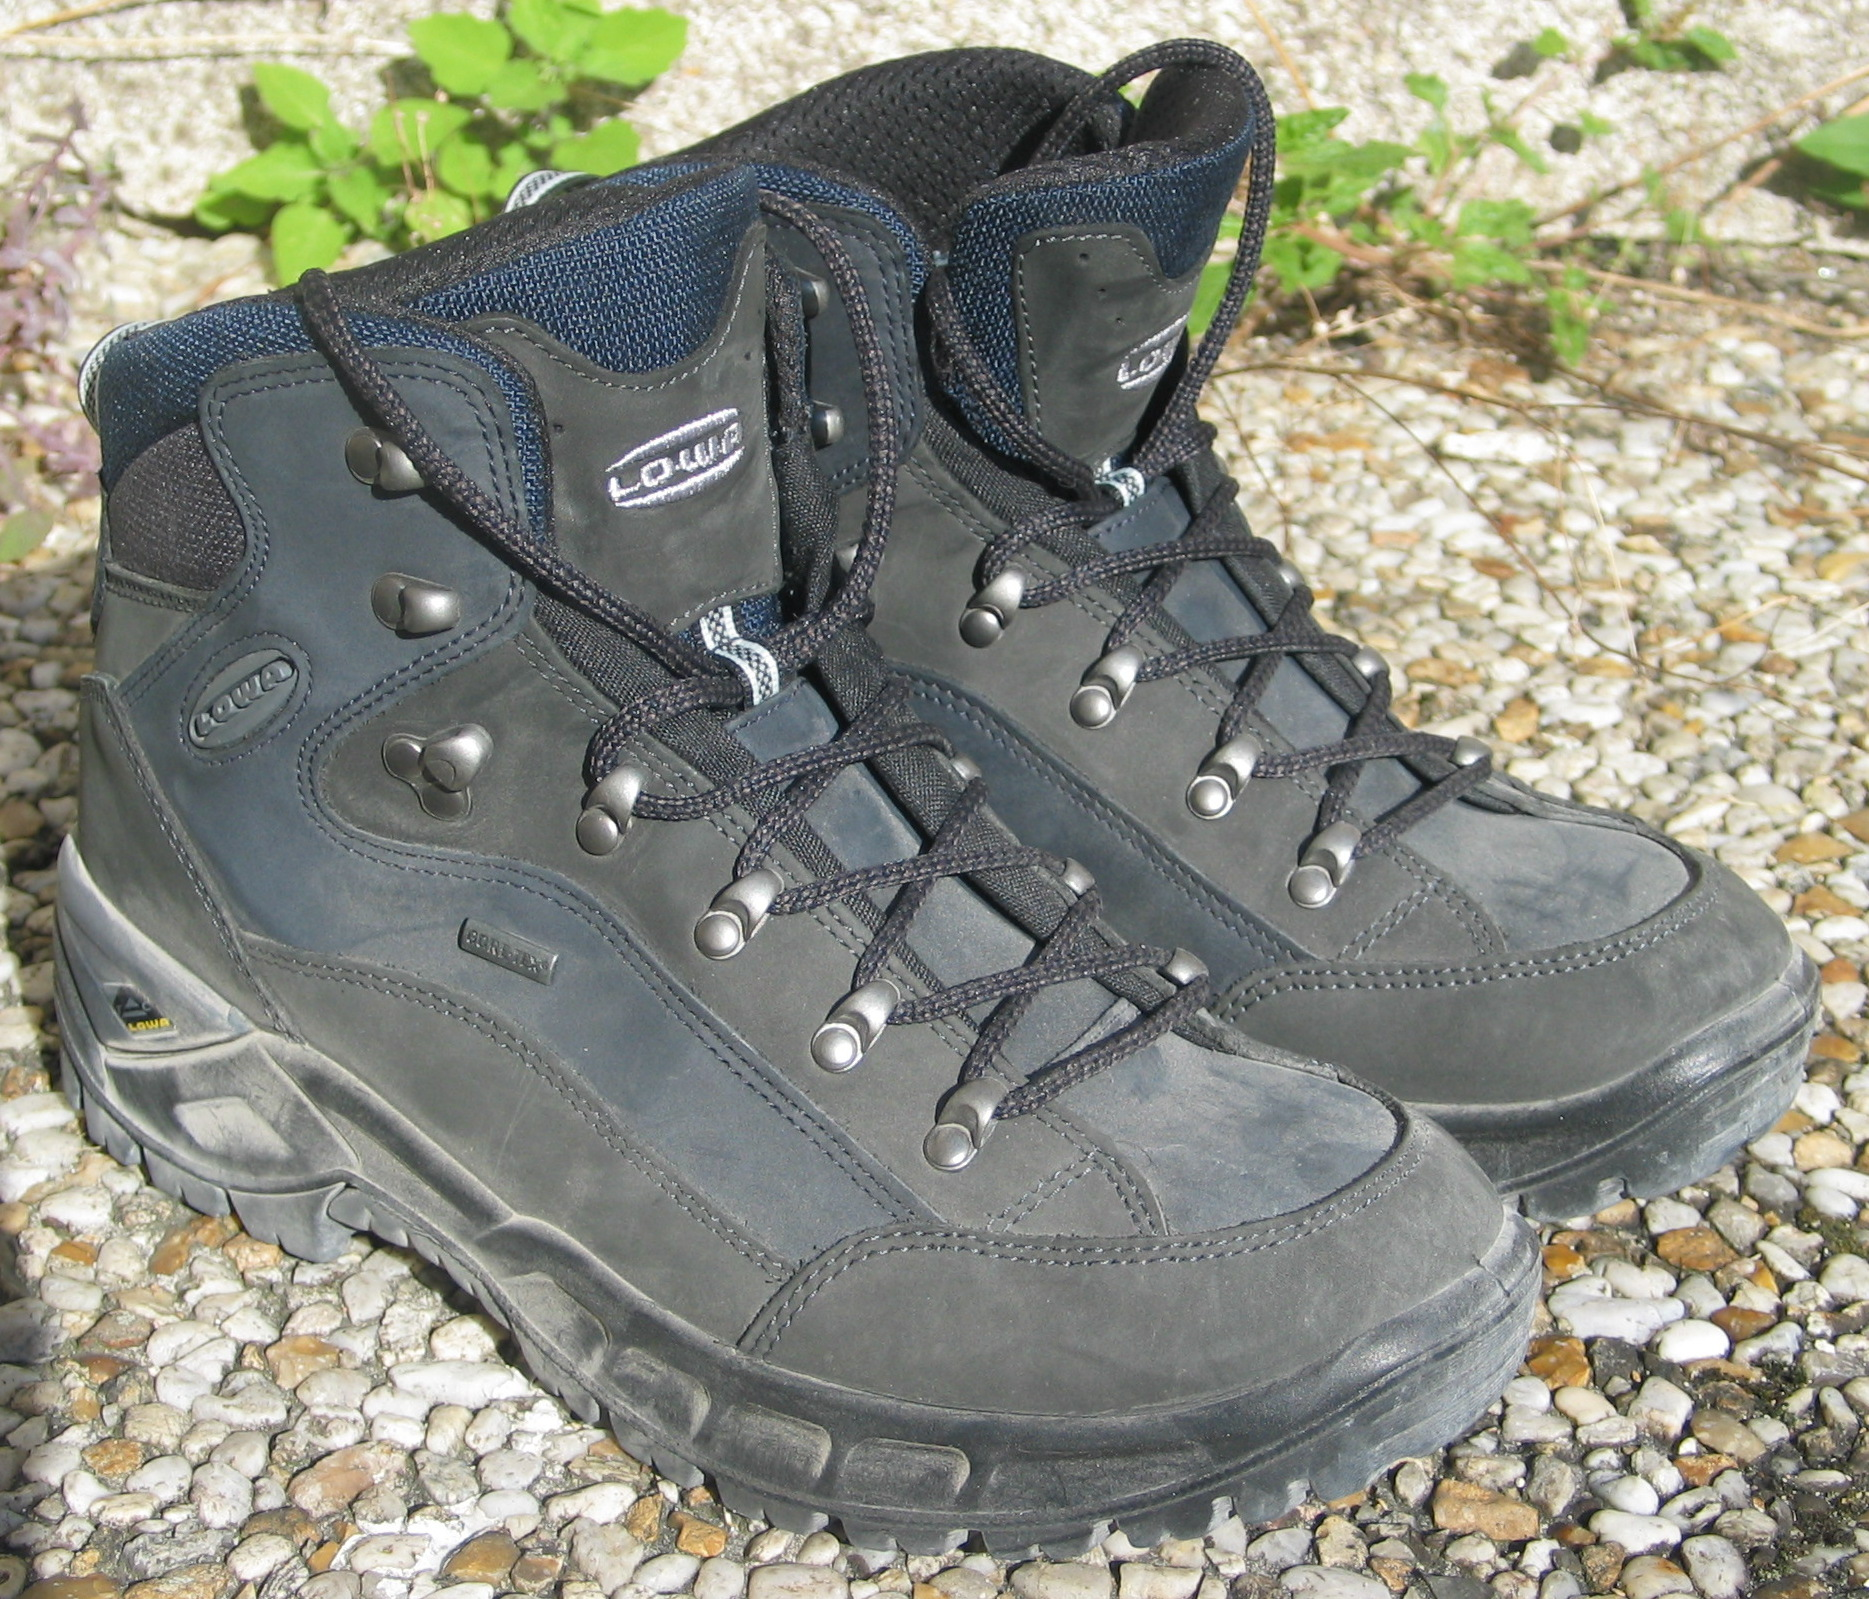 6dea9924b9f Hiking boot - Wikipedia